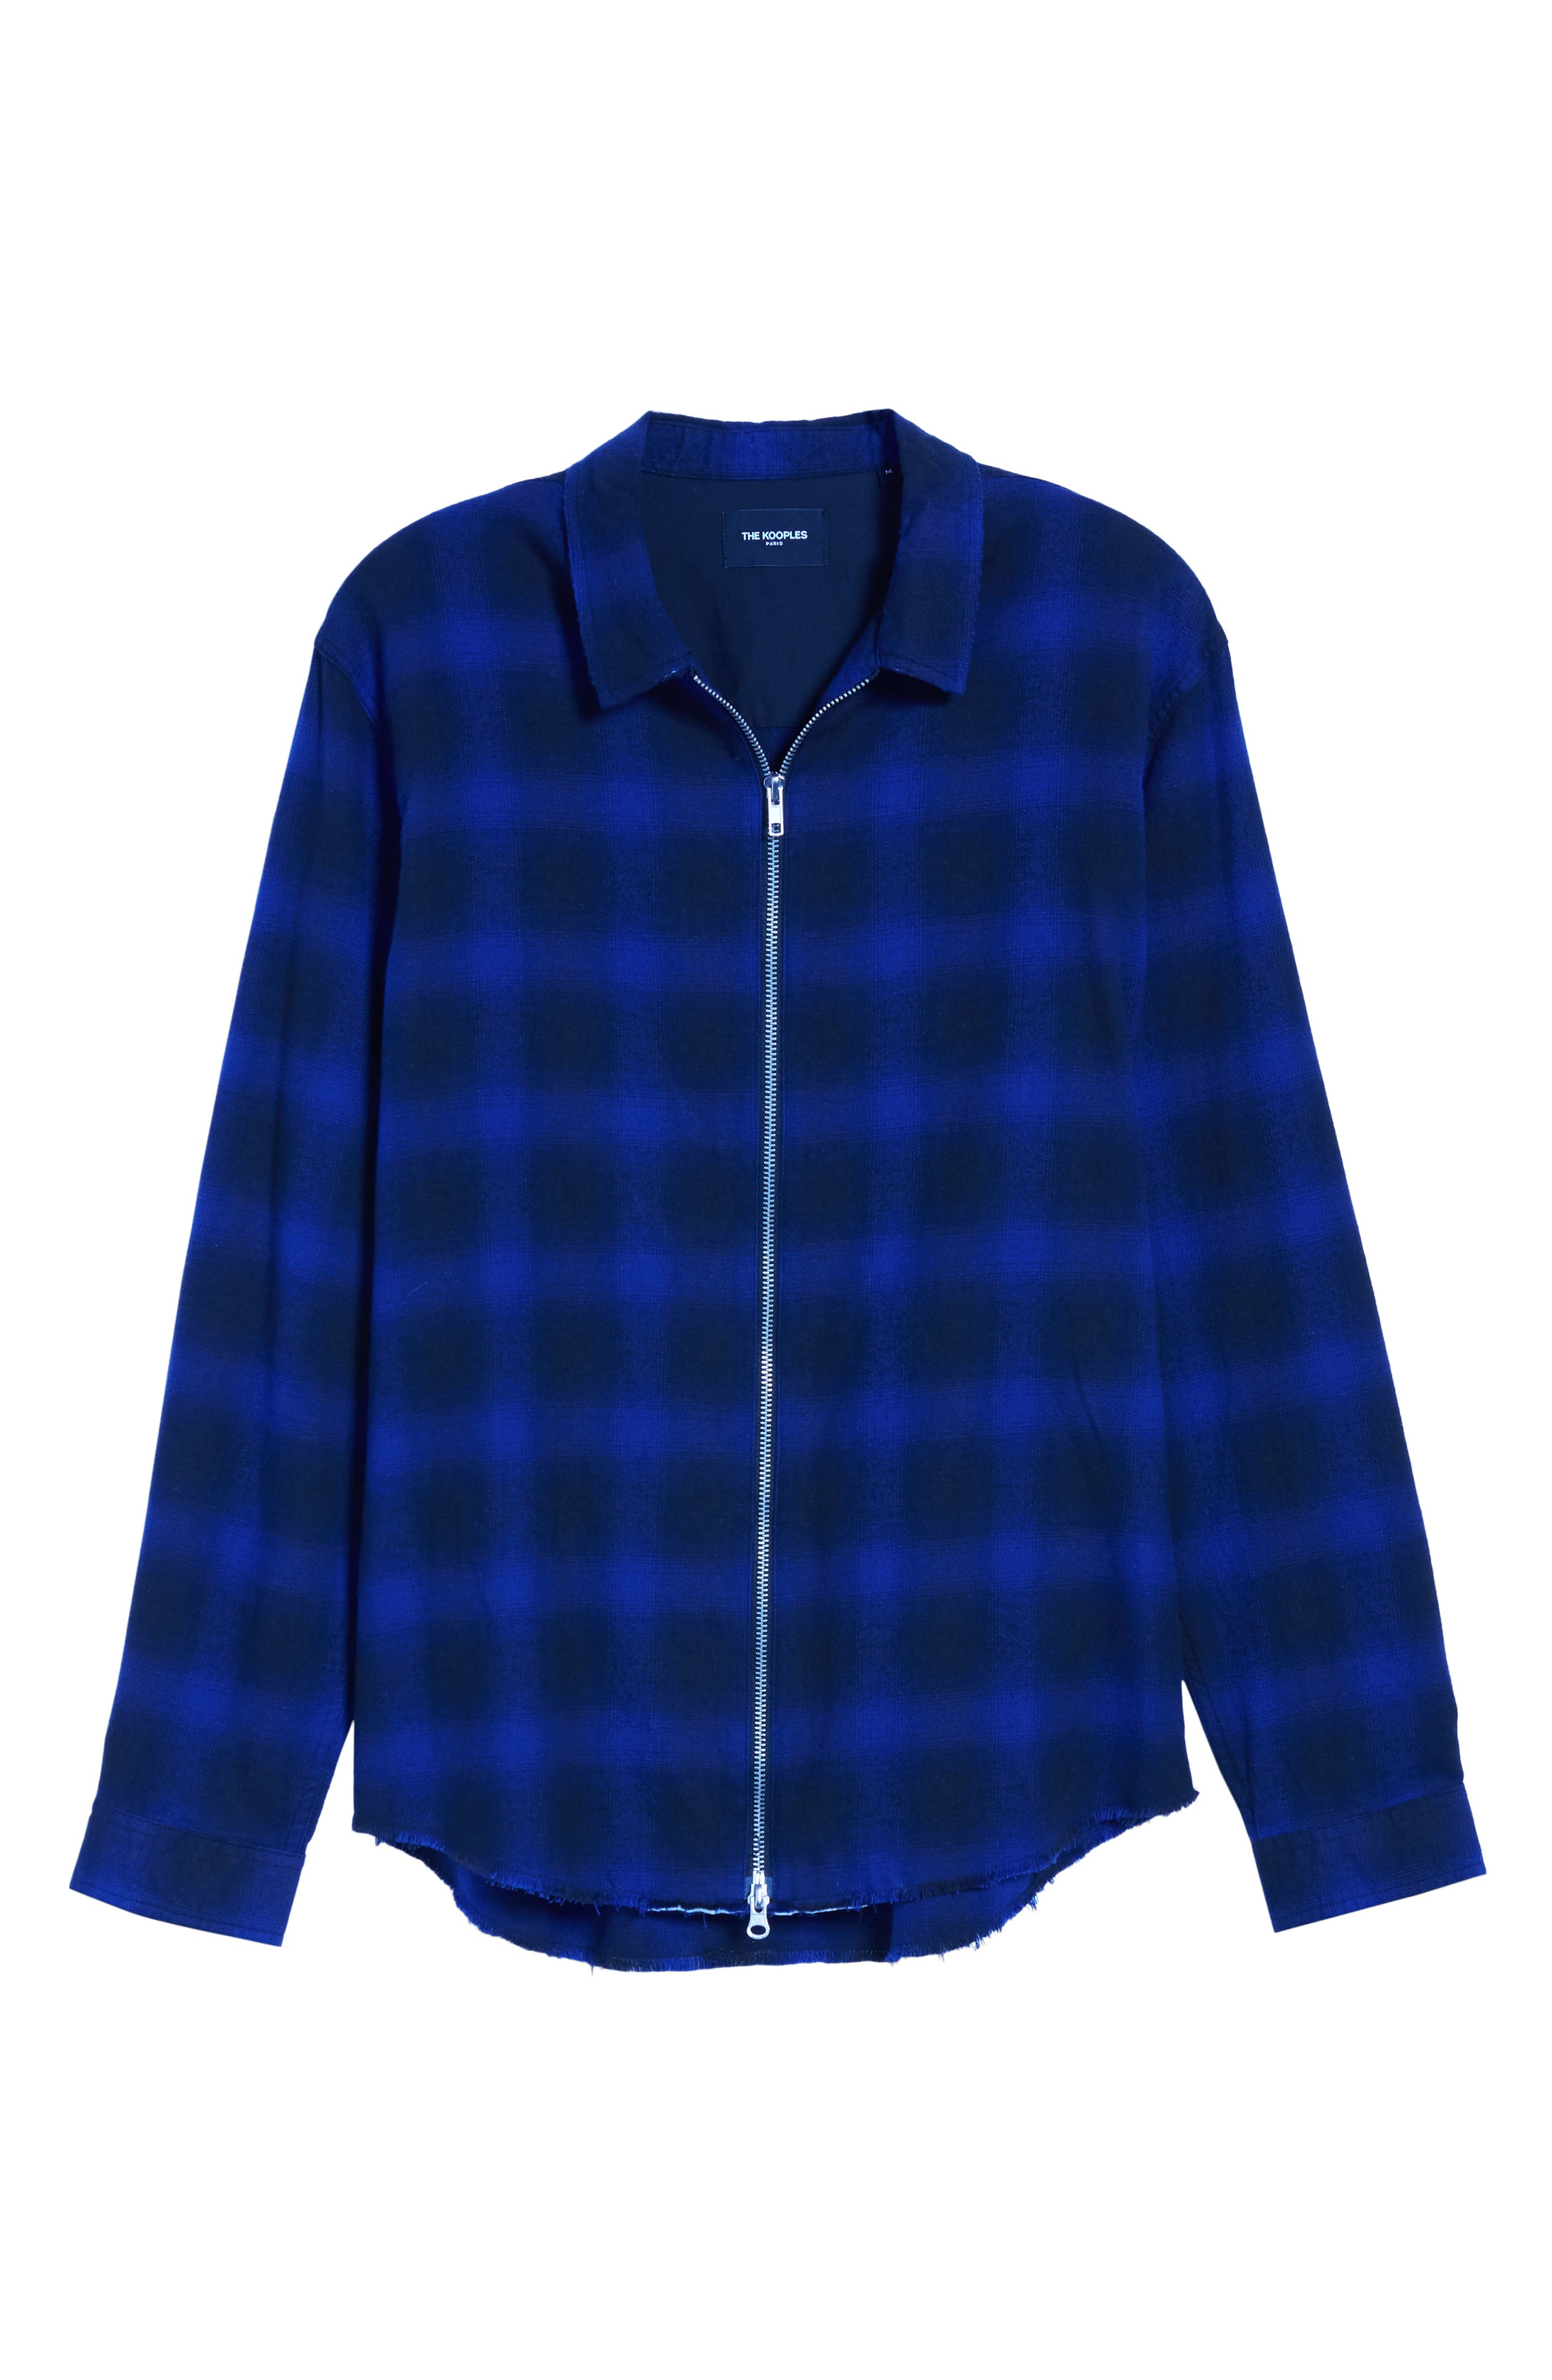 THE KOOPLES, Zip Flannel Jacket, Alternate thumbnail 5, color, BLUE BLACK